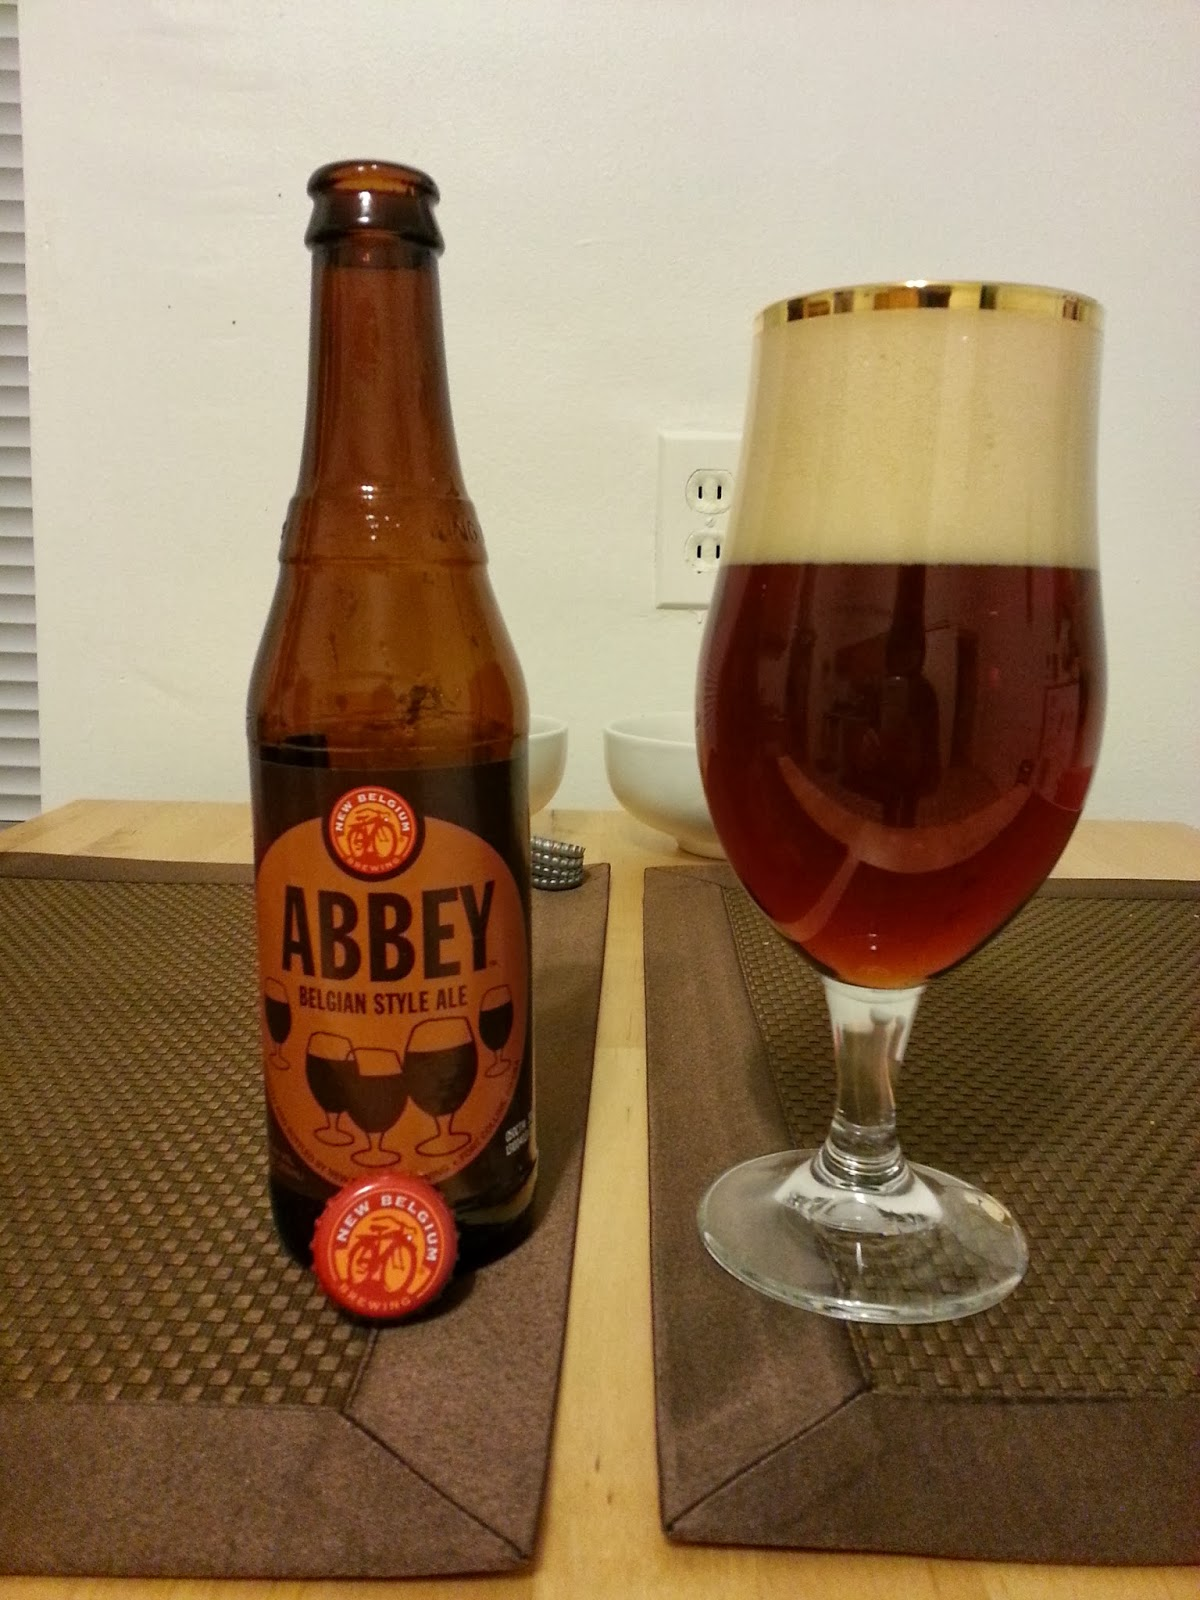 New Belgium Brewery Company's Abbey Belgian Style Ale   I